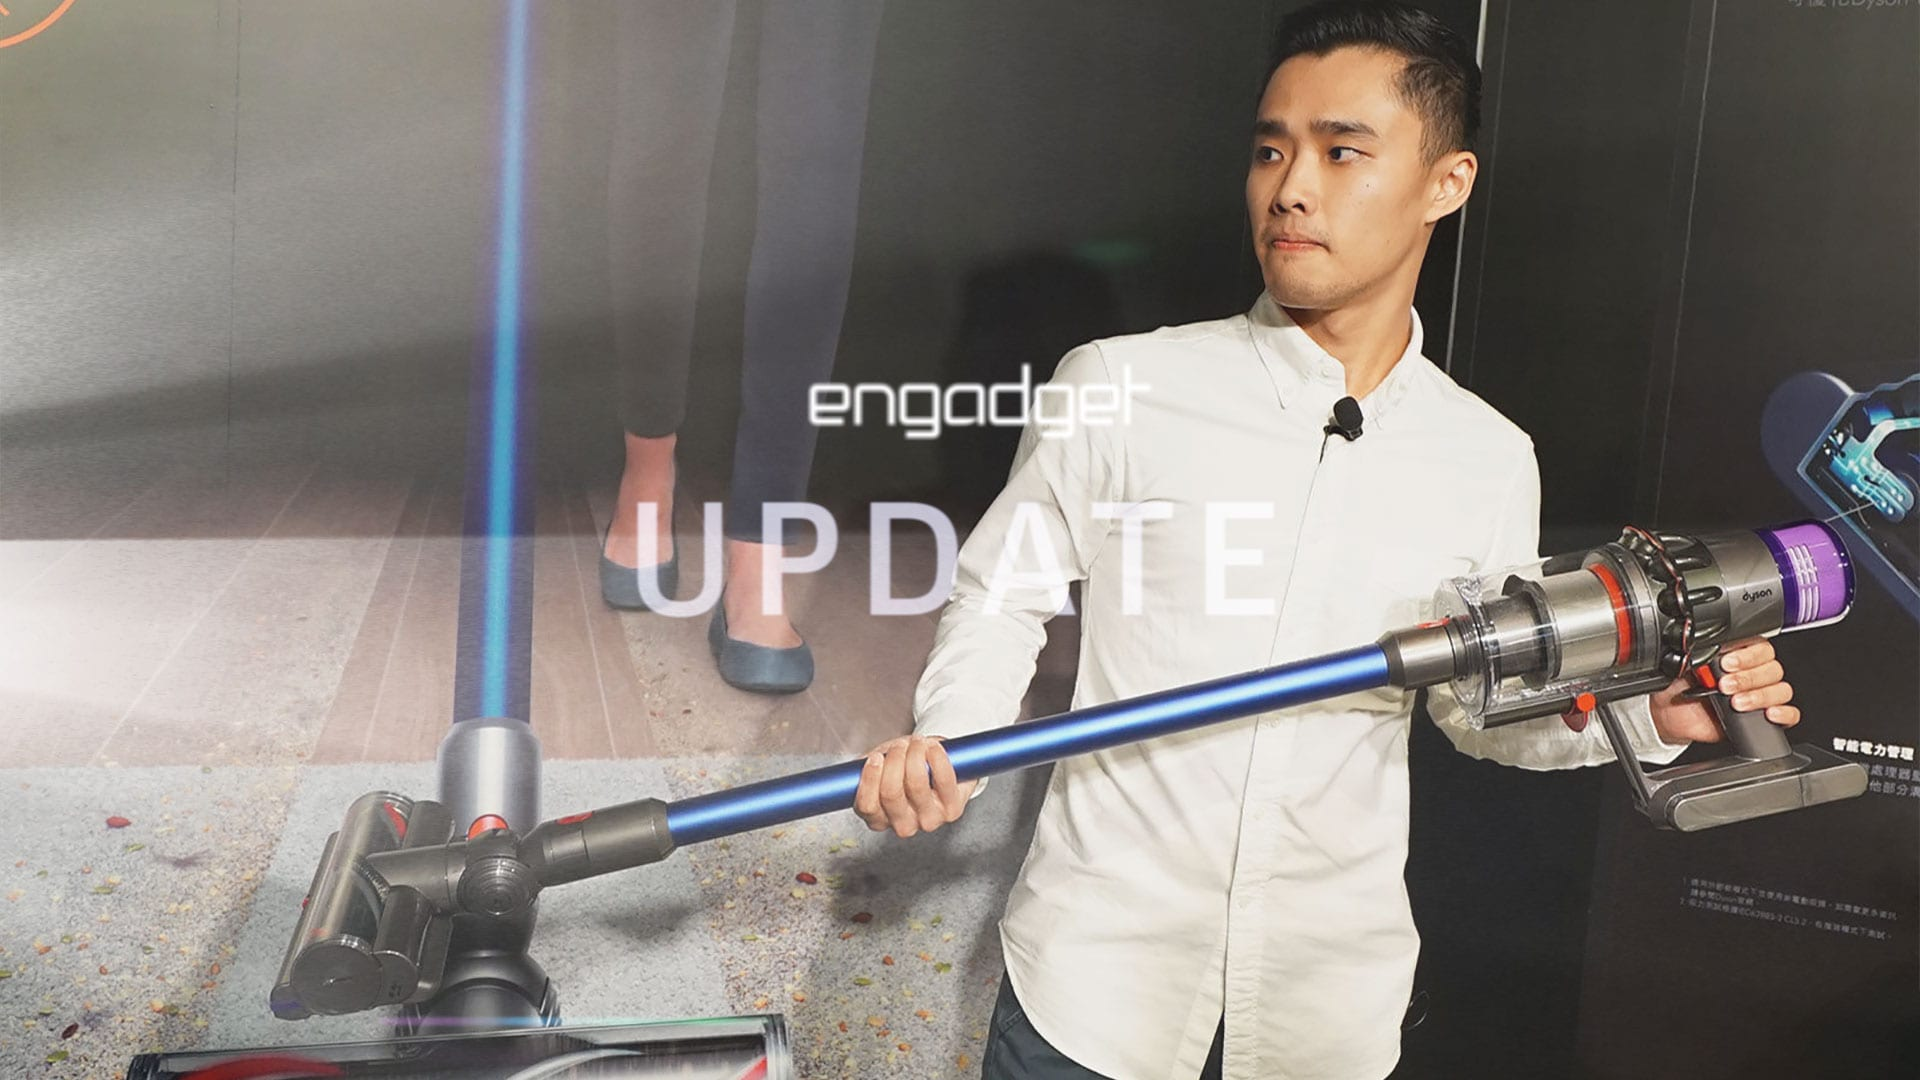 Engadget Update EP51